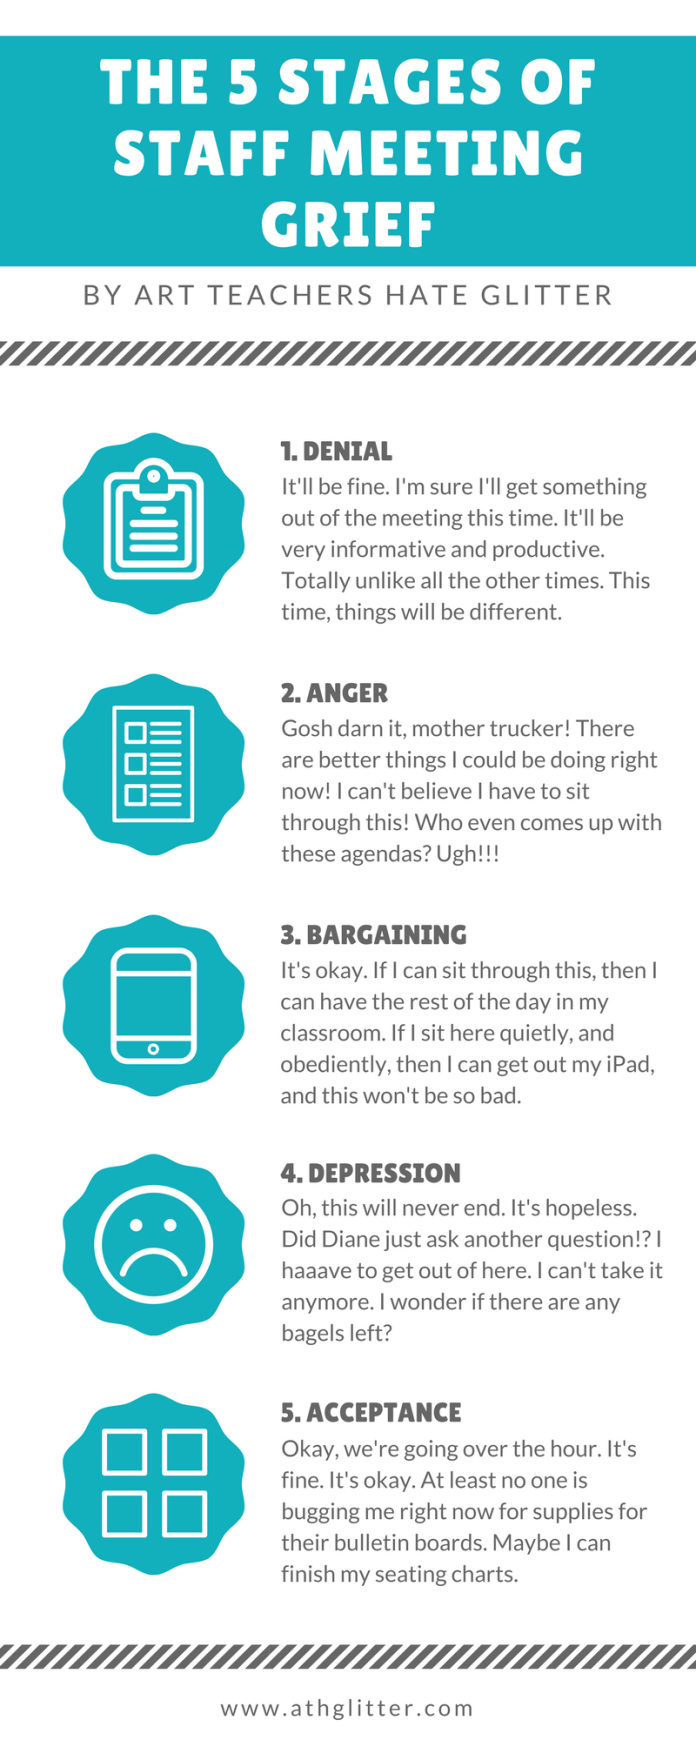 The 5 Stages of Staff Meeting Grief www.athglitter.com